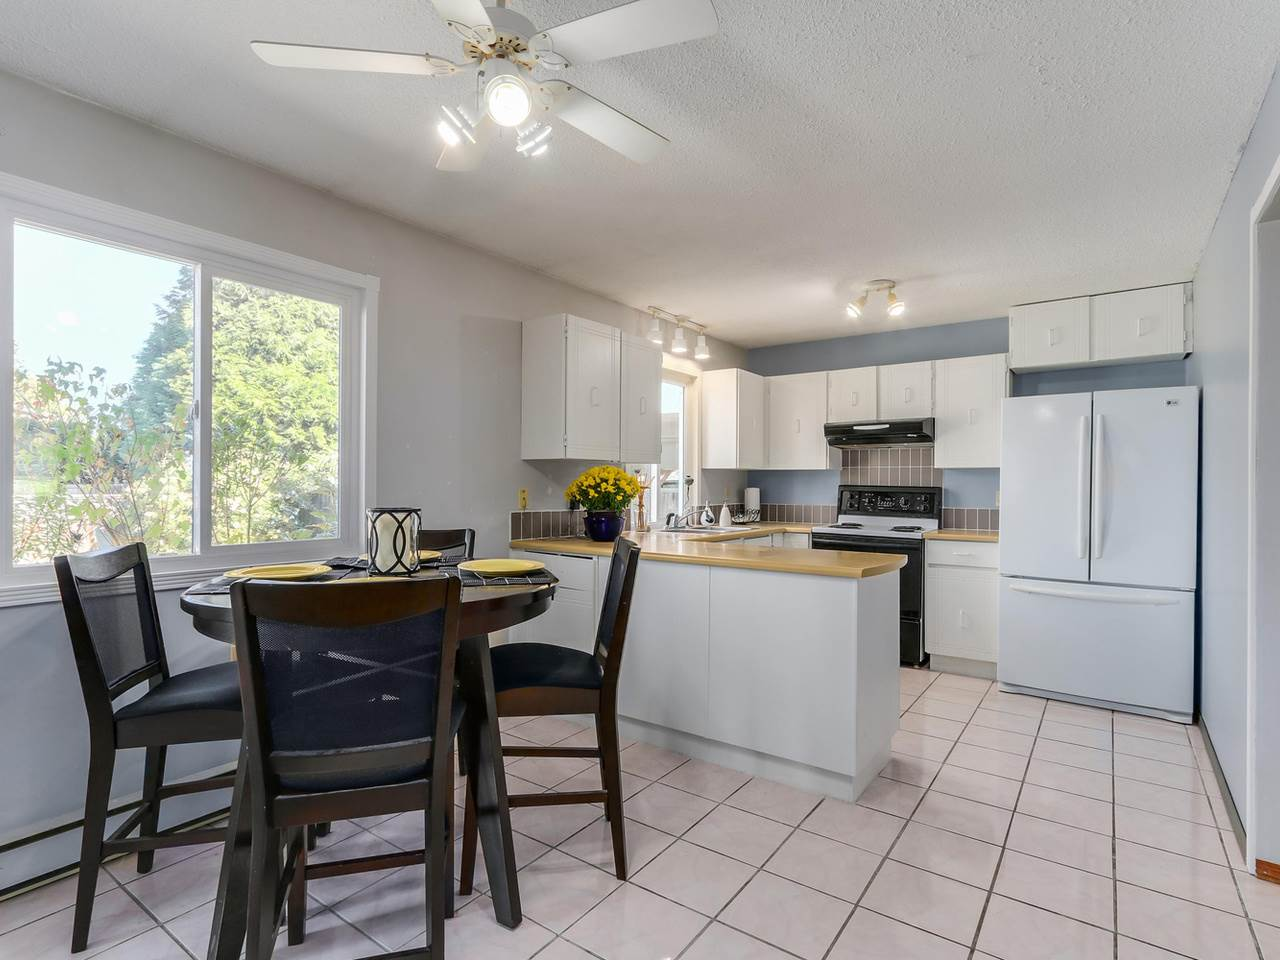 Great working kitchen with lots of counter space. Lots of space for eating area with big picture window looks out to fenced back yard.